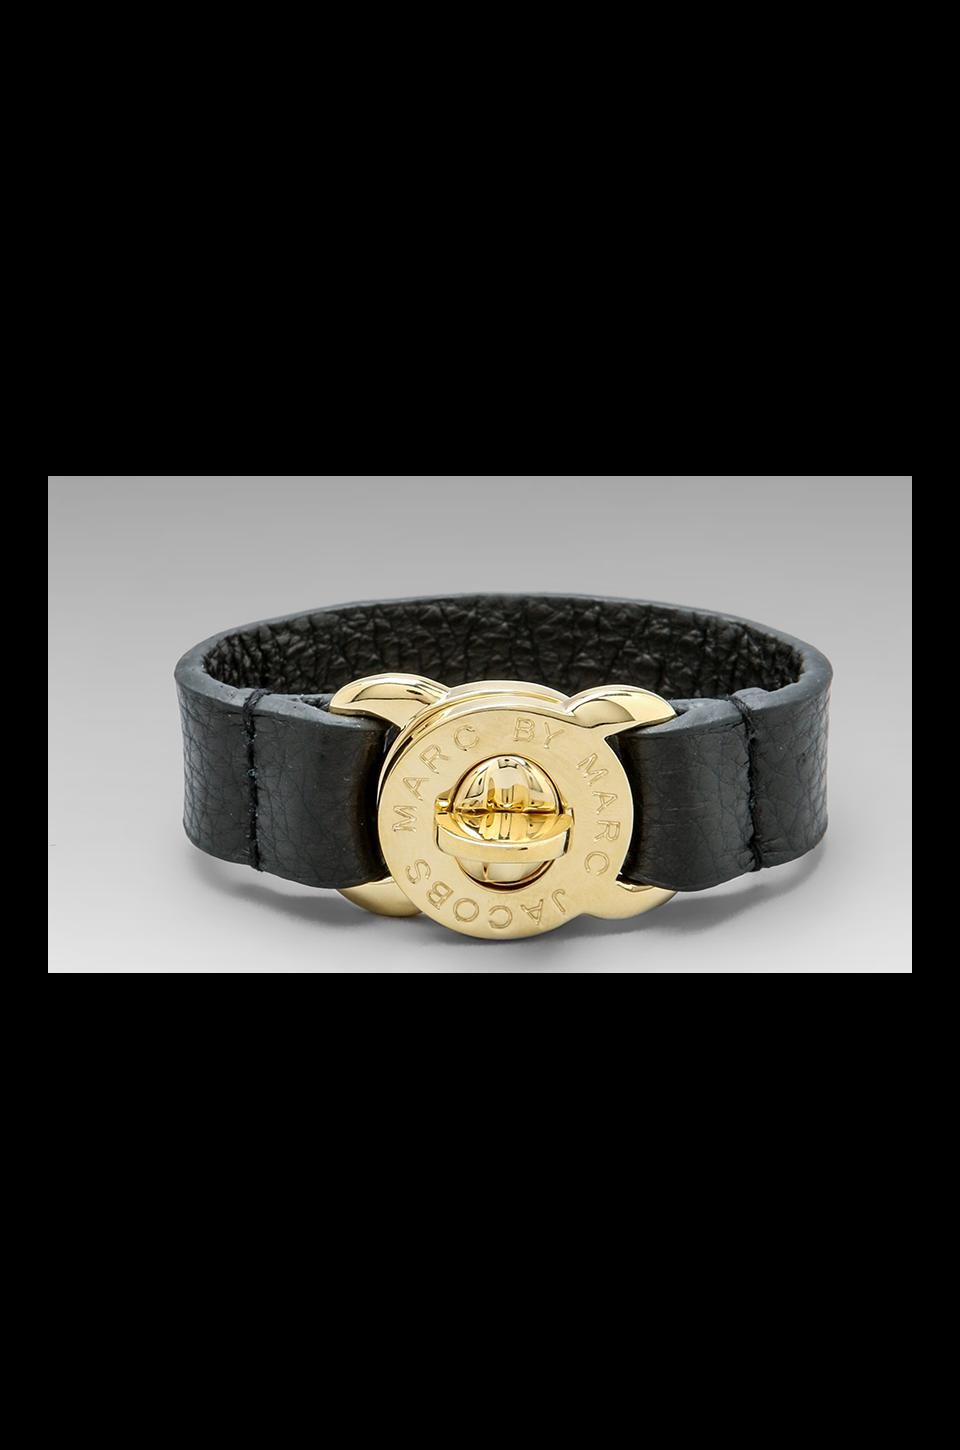 Marc by Marc Jacobs Large Turnlock Leather Bracelet en Noir